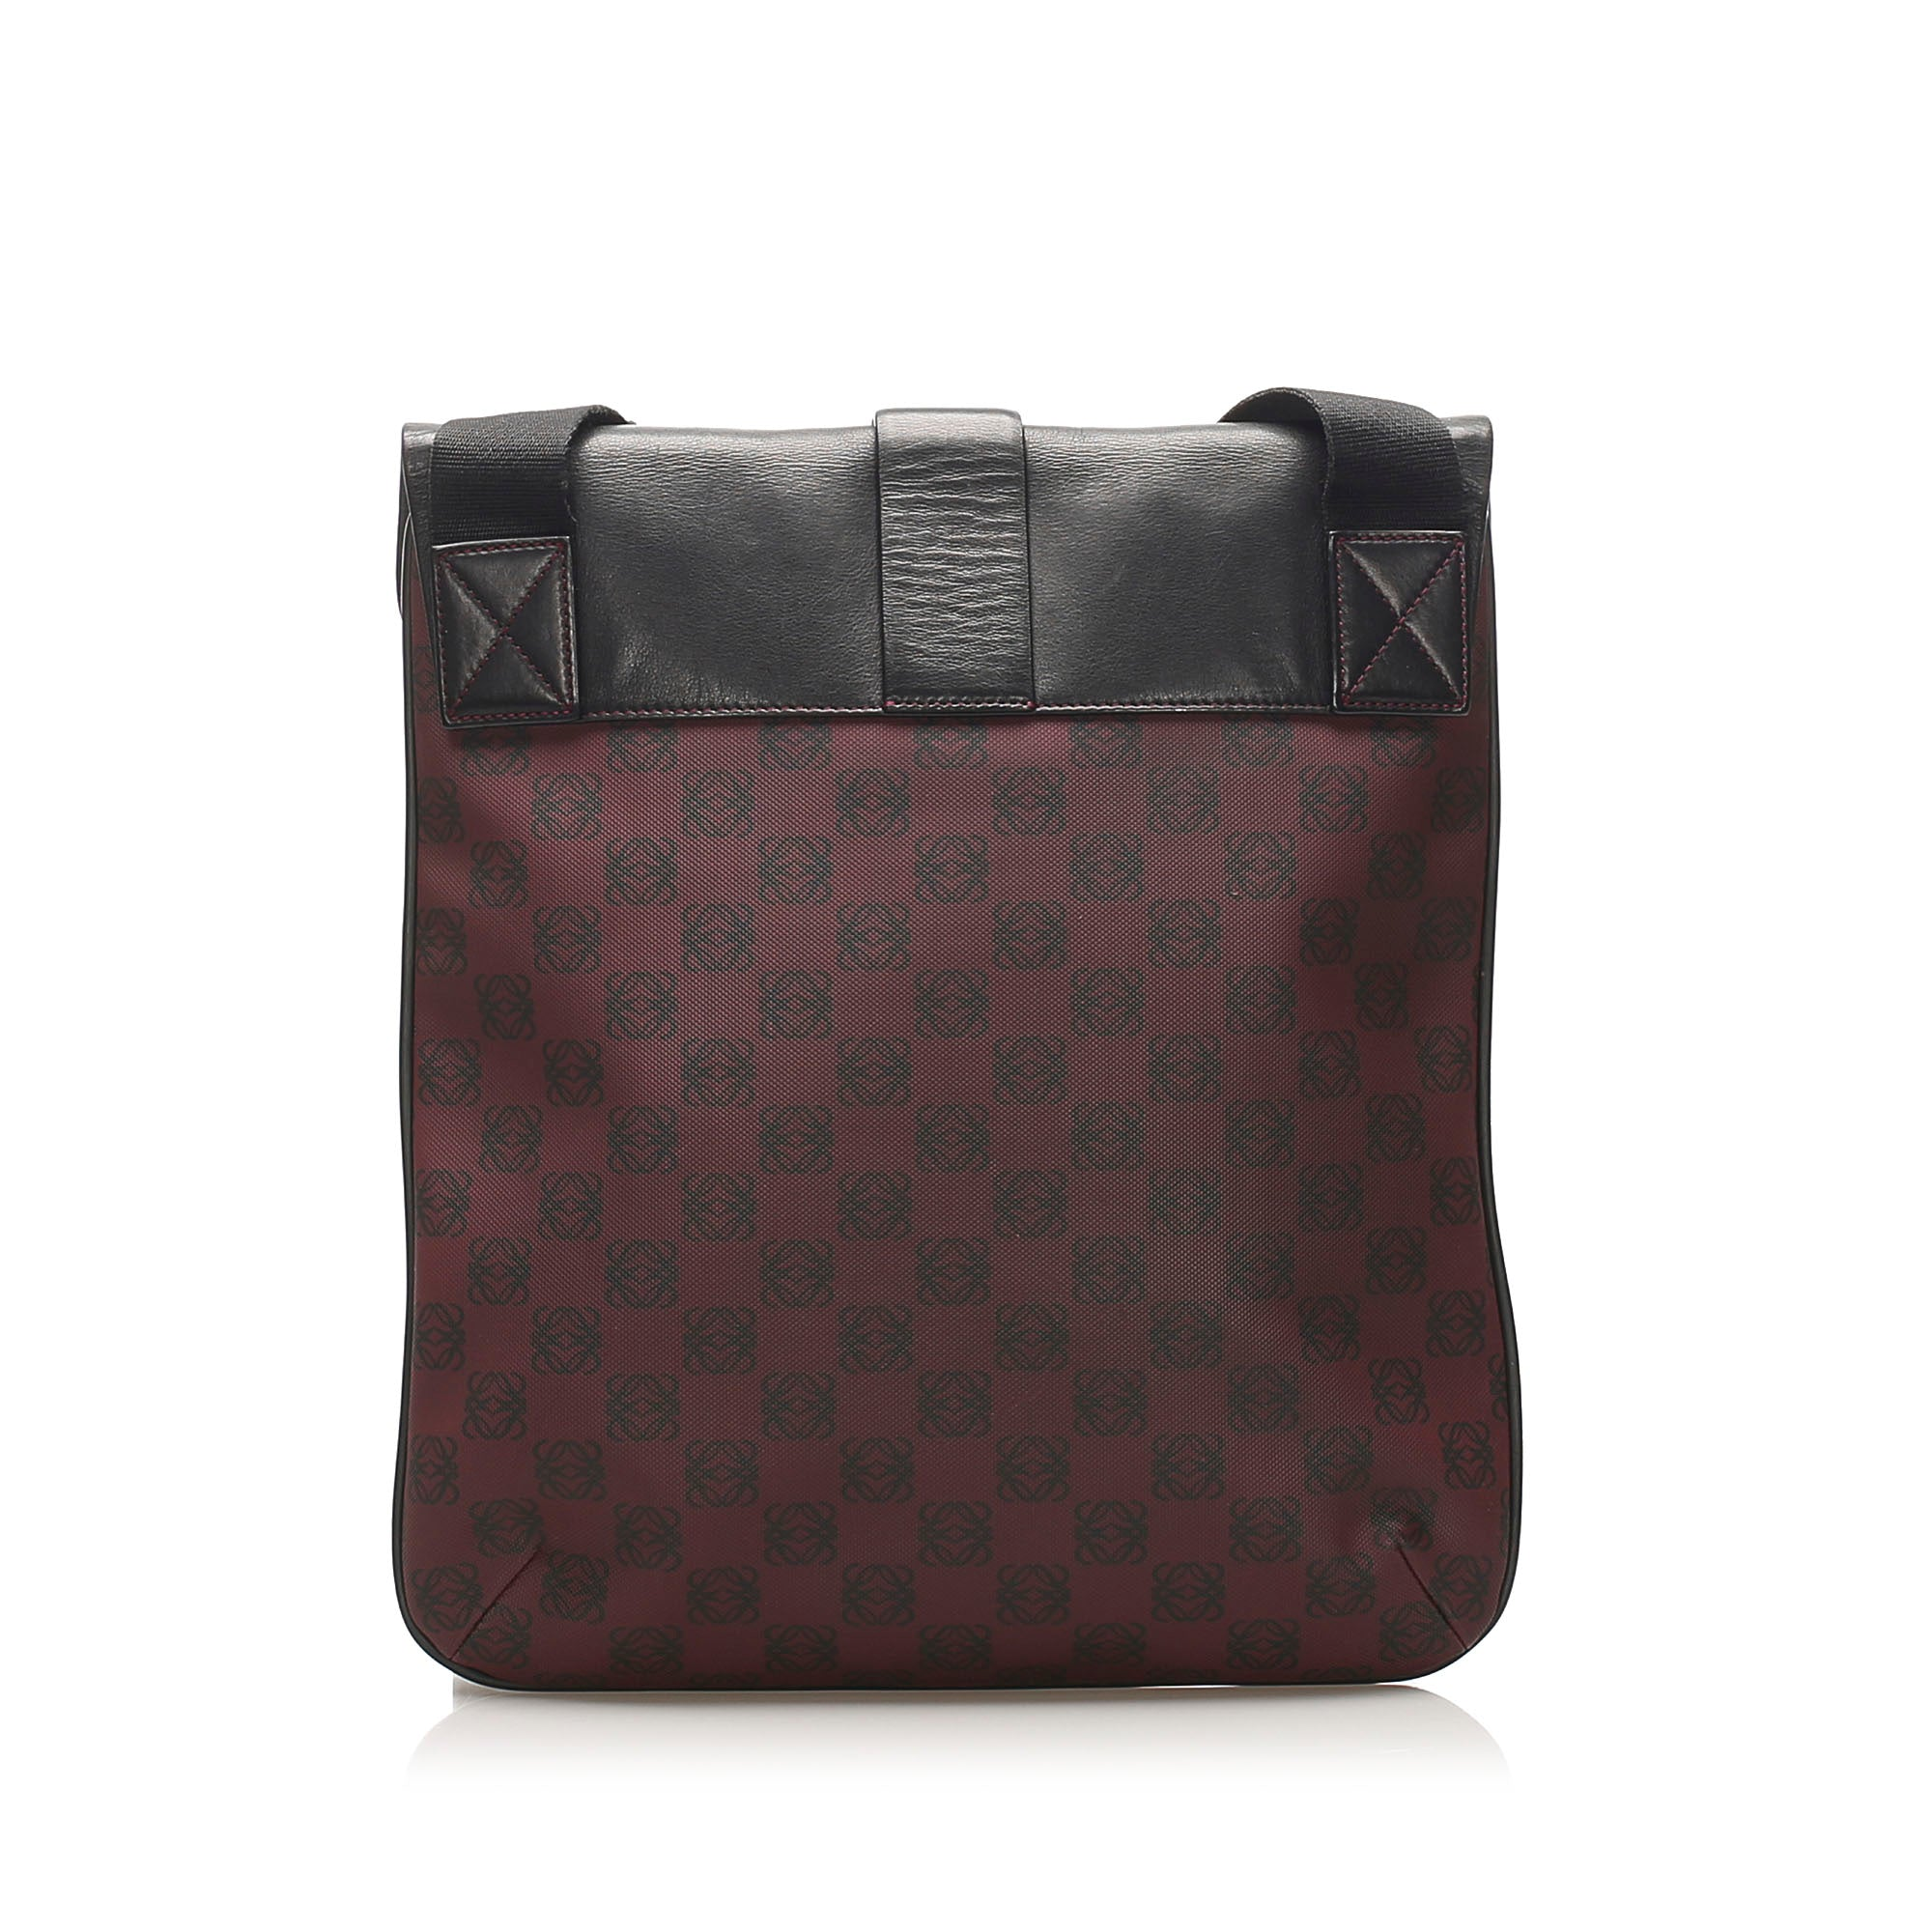 Loewe Brown Printed Anagram Leather Crossbody Bag